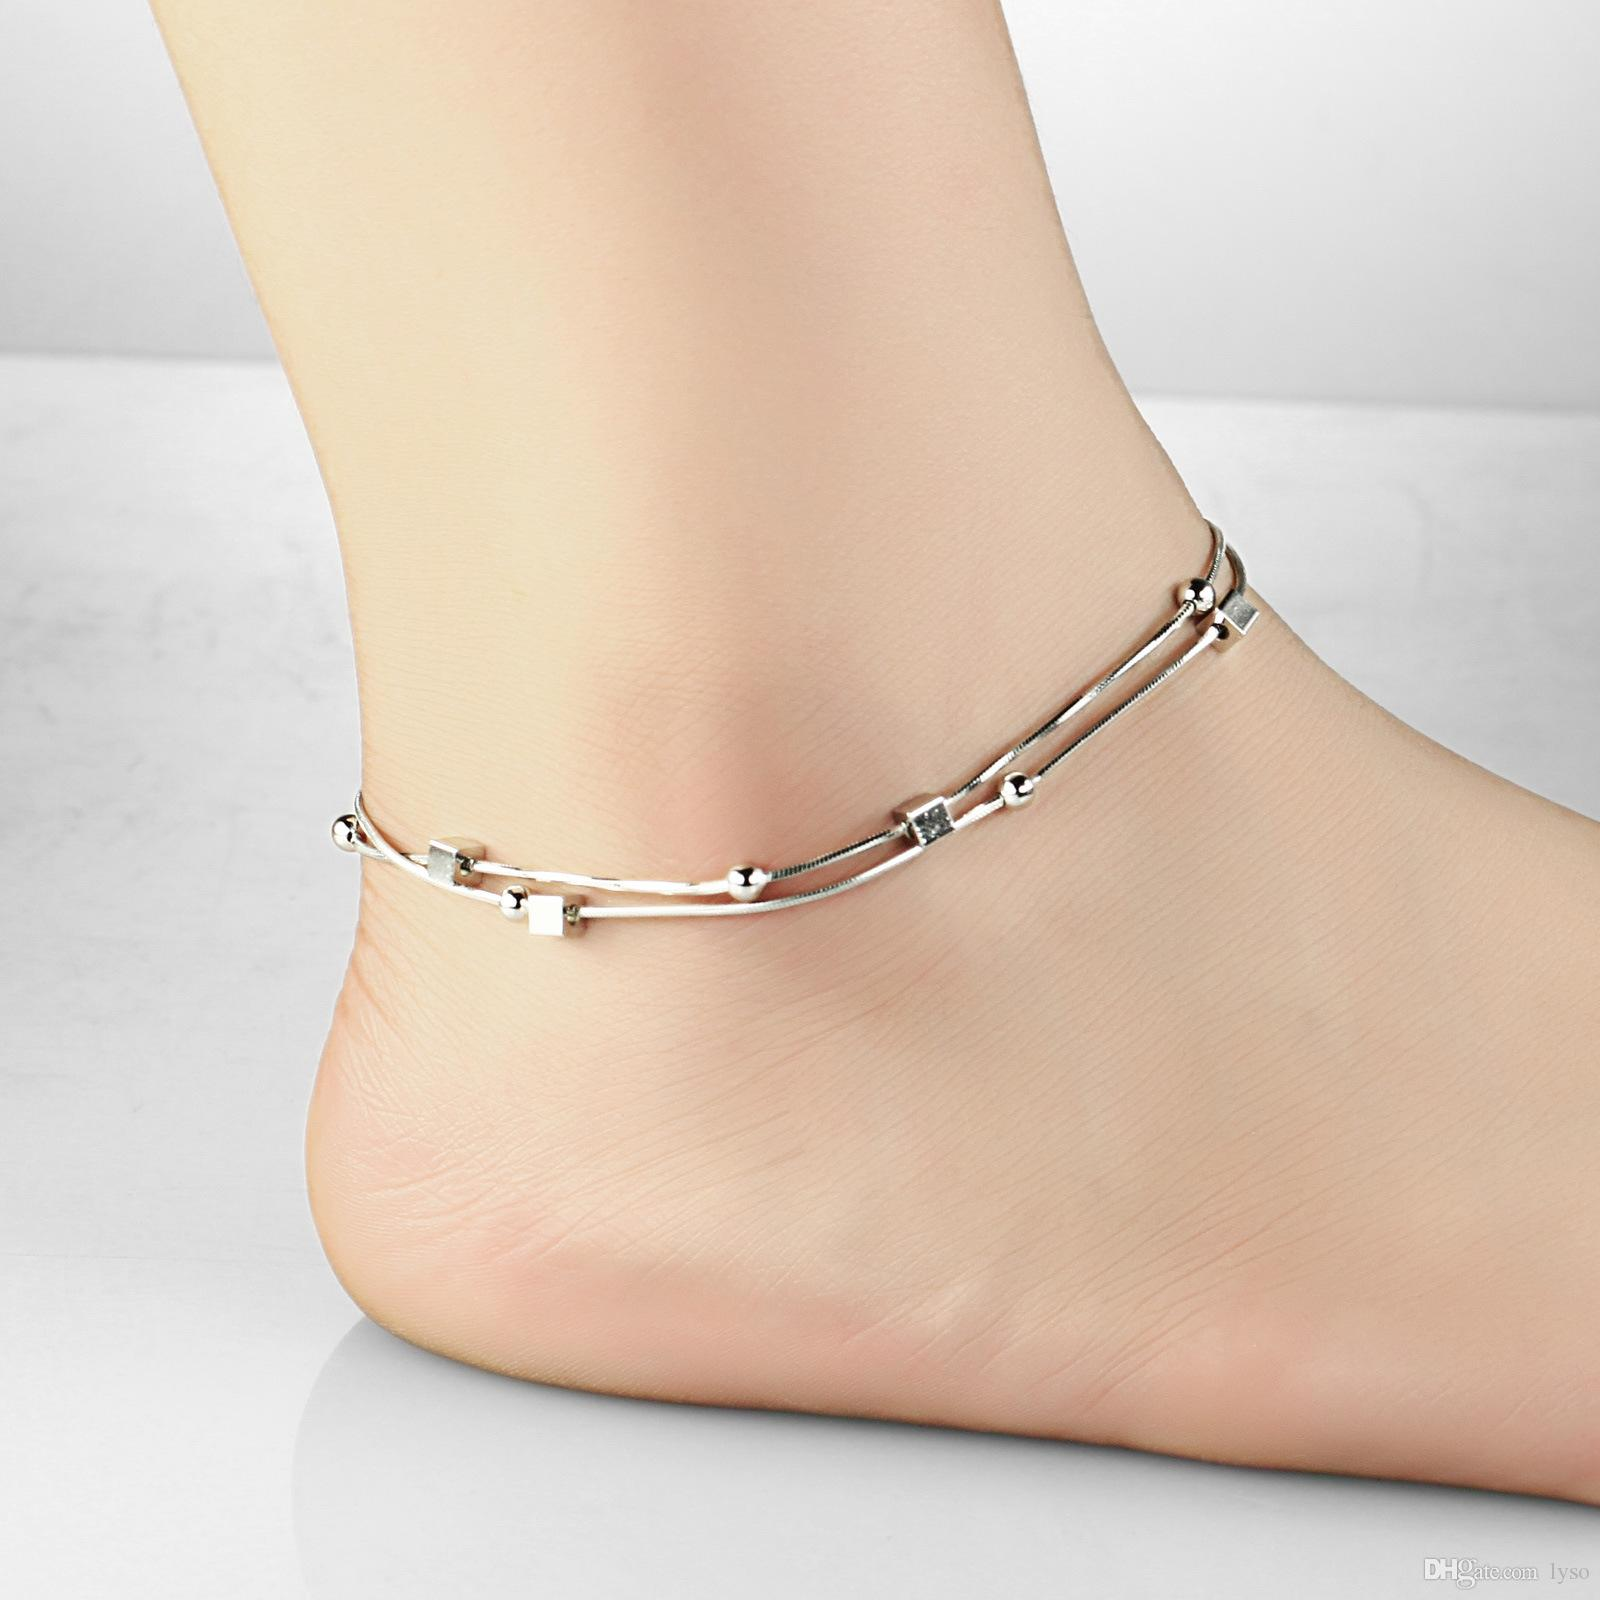 in fashion item jewelry us color online women bracelet anklets plated layer vintage design heart ankle from anklet pendant eu real gold double